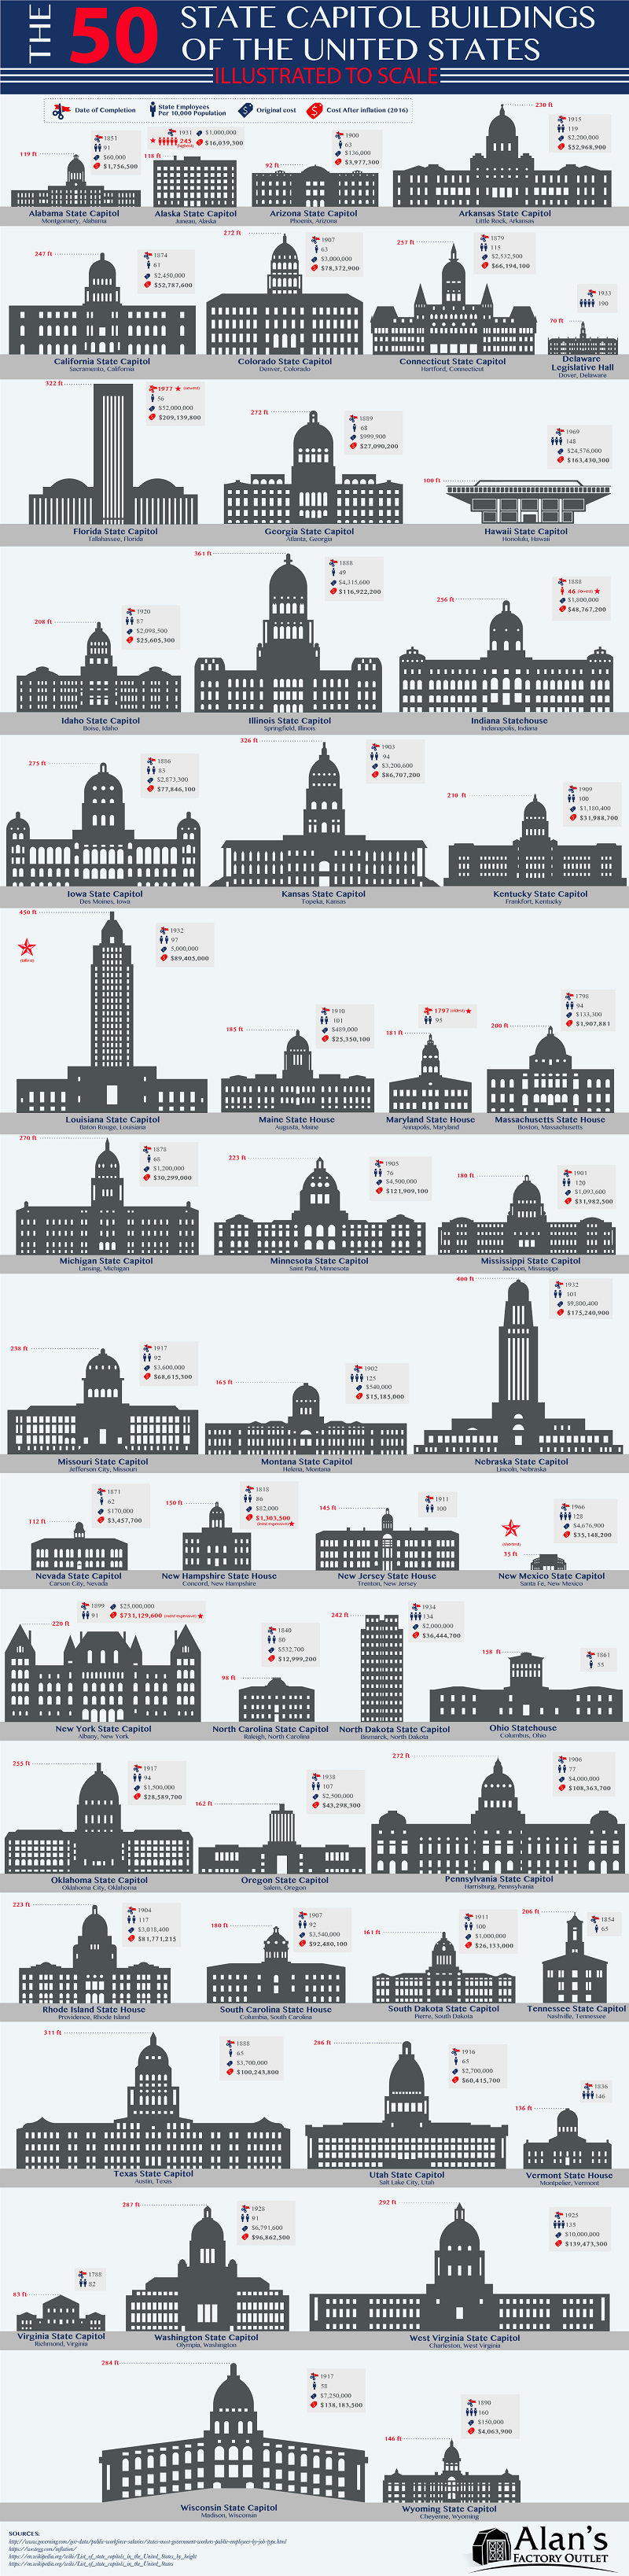 50 State Capitol Buildings